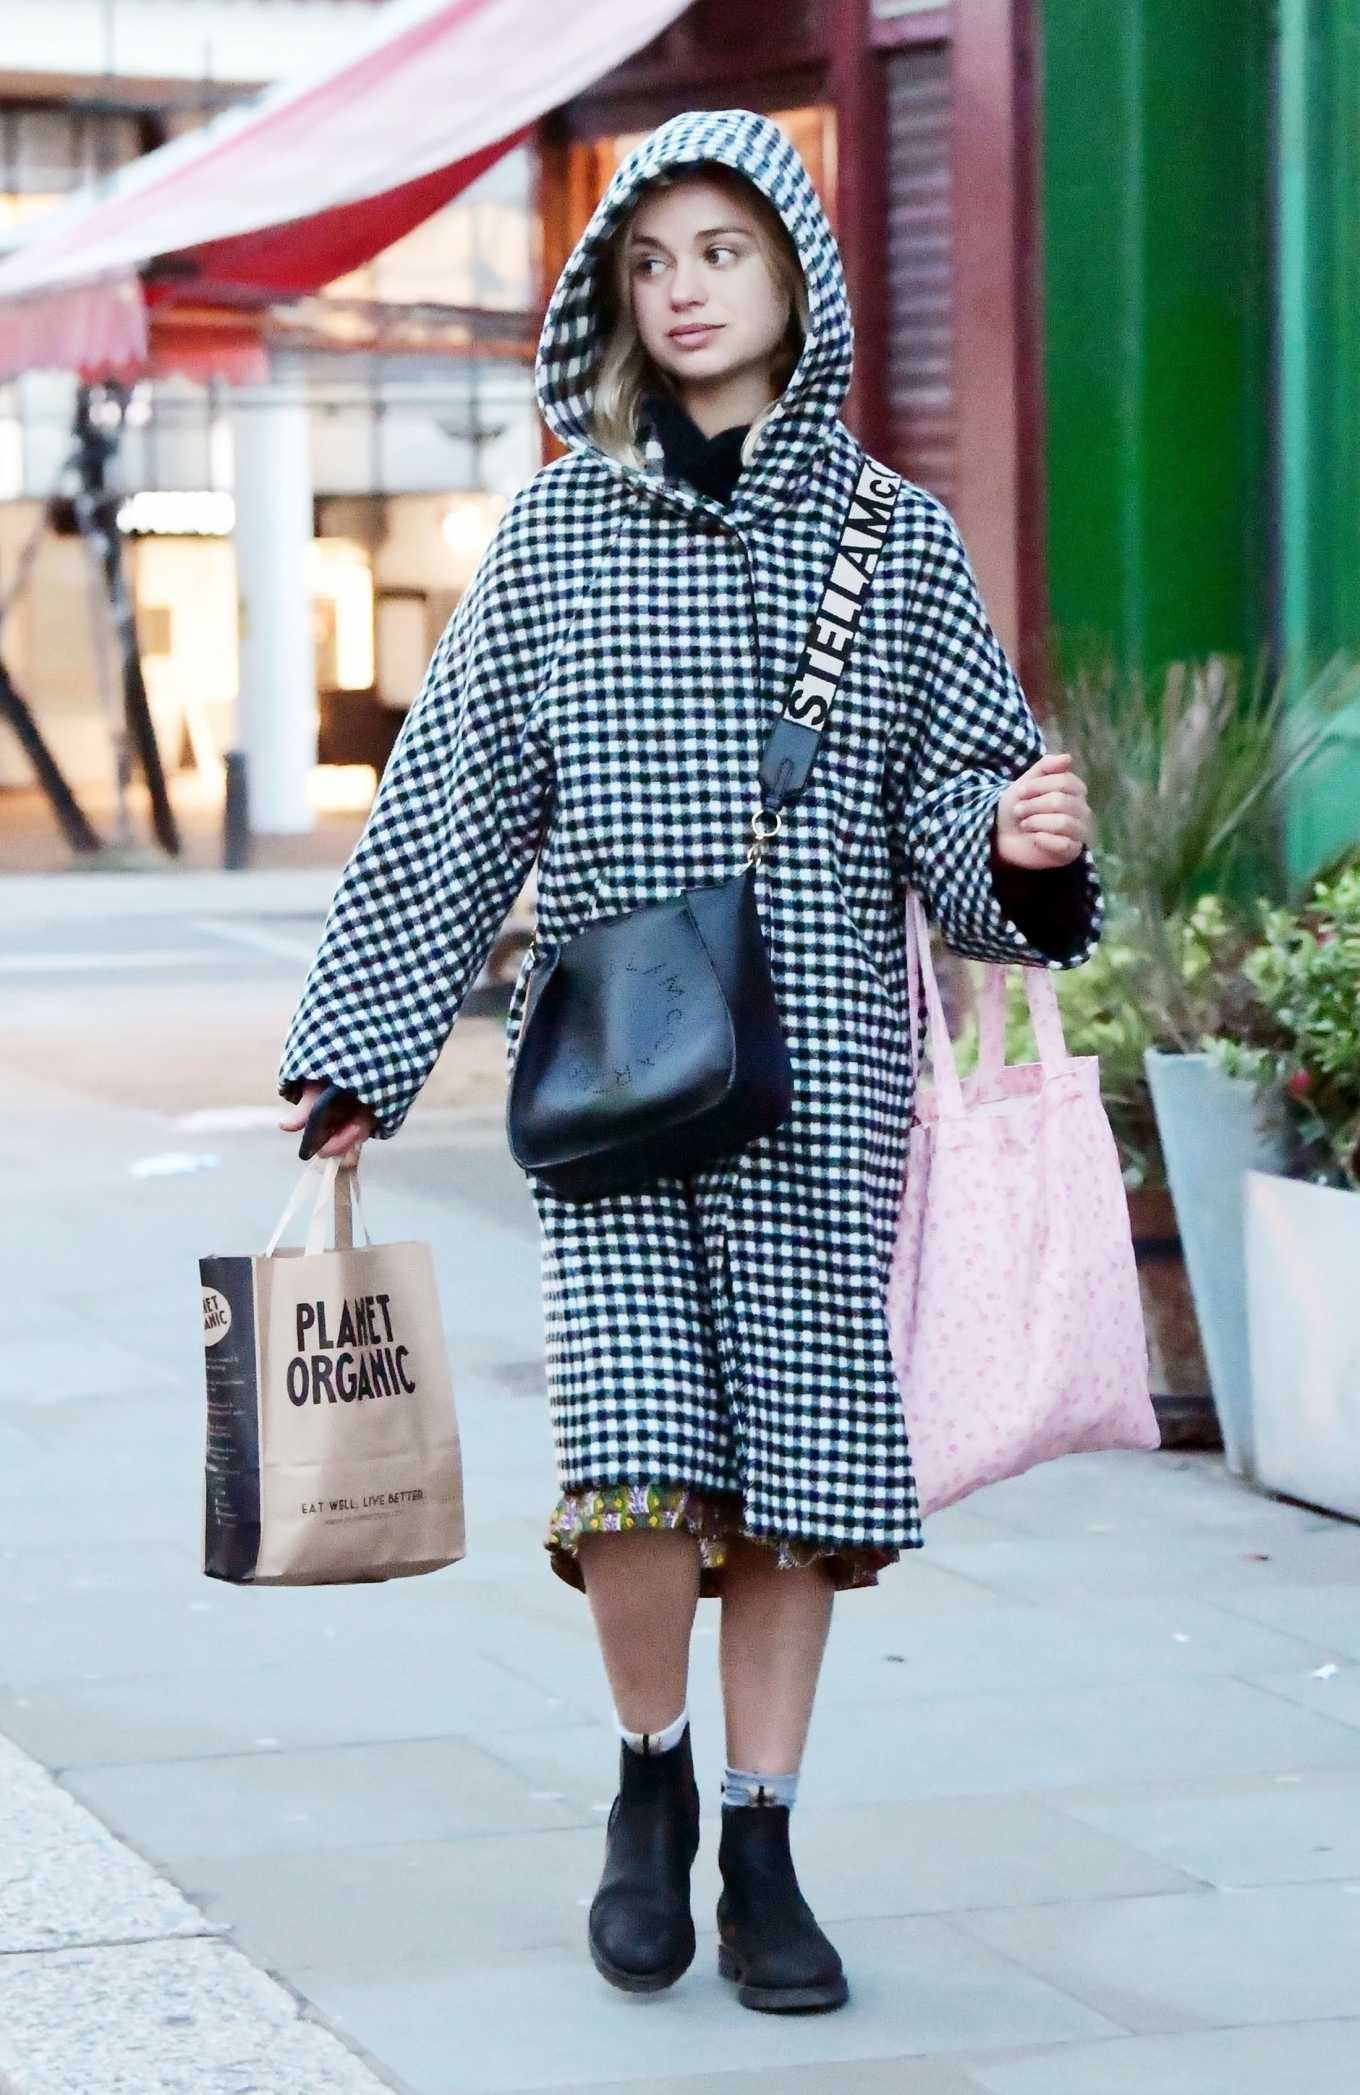 Amelia Windsor 2020 : Amelia Windsor – Looks stylis while out in the trendy area of Notting Hill-18